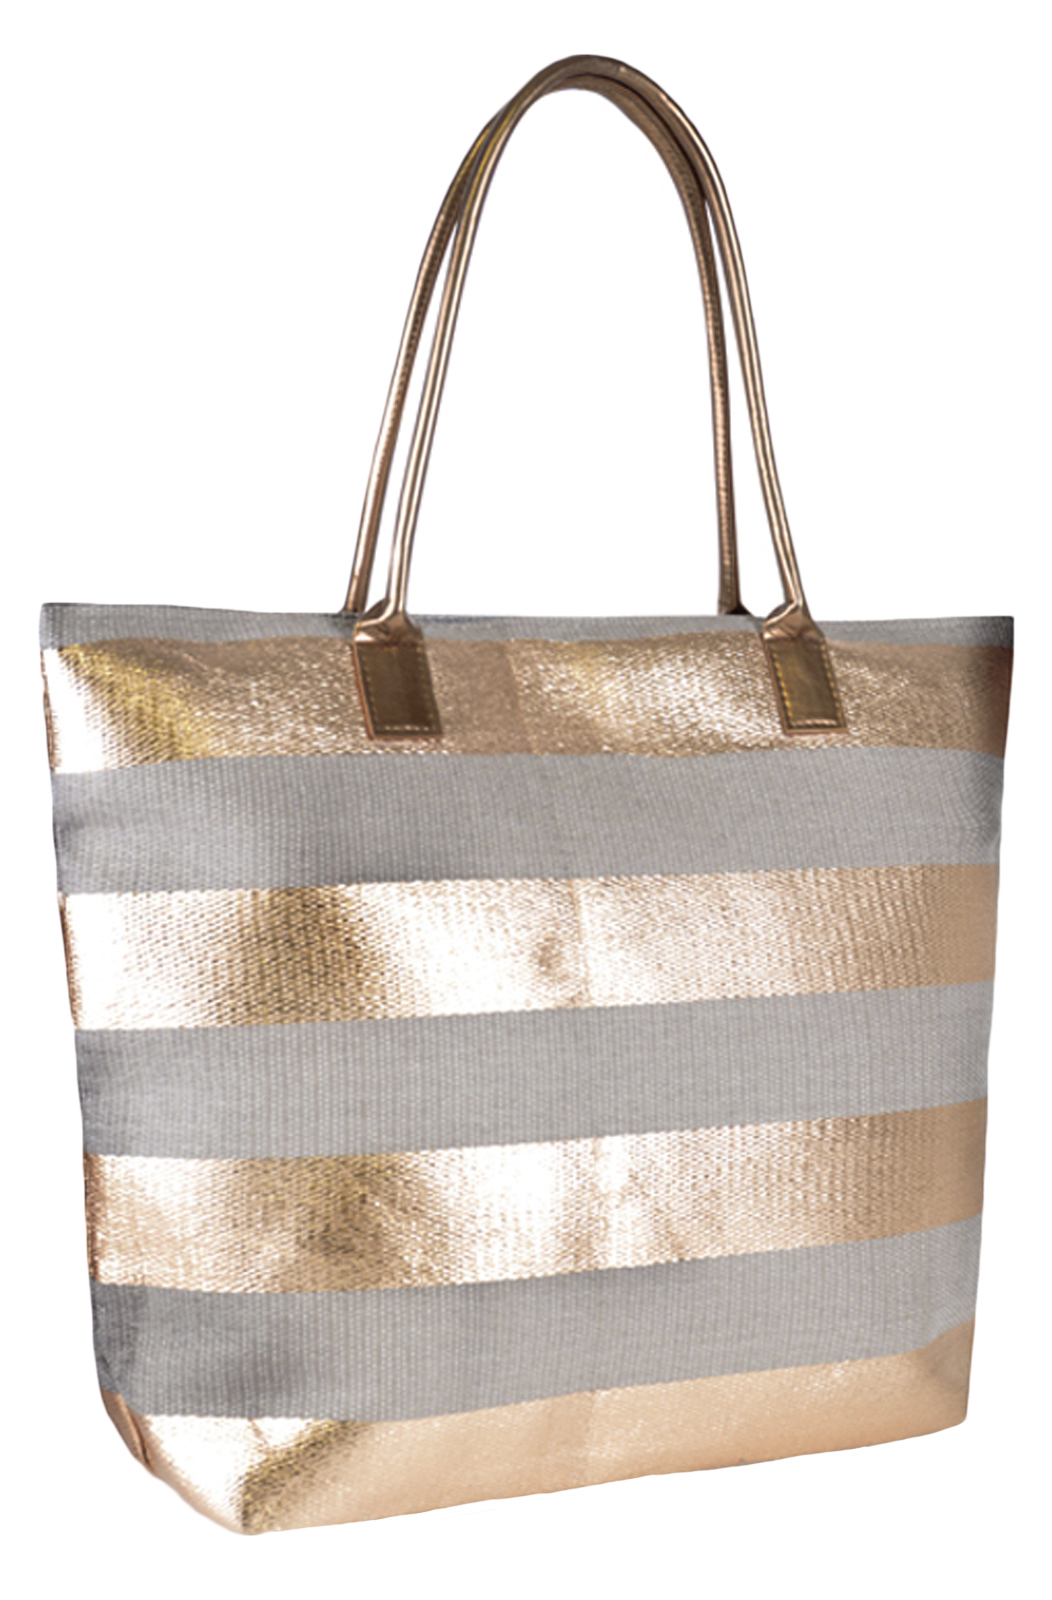 Womens shoulder metallic tote bag summer holiday beach